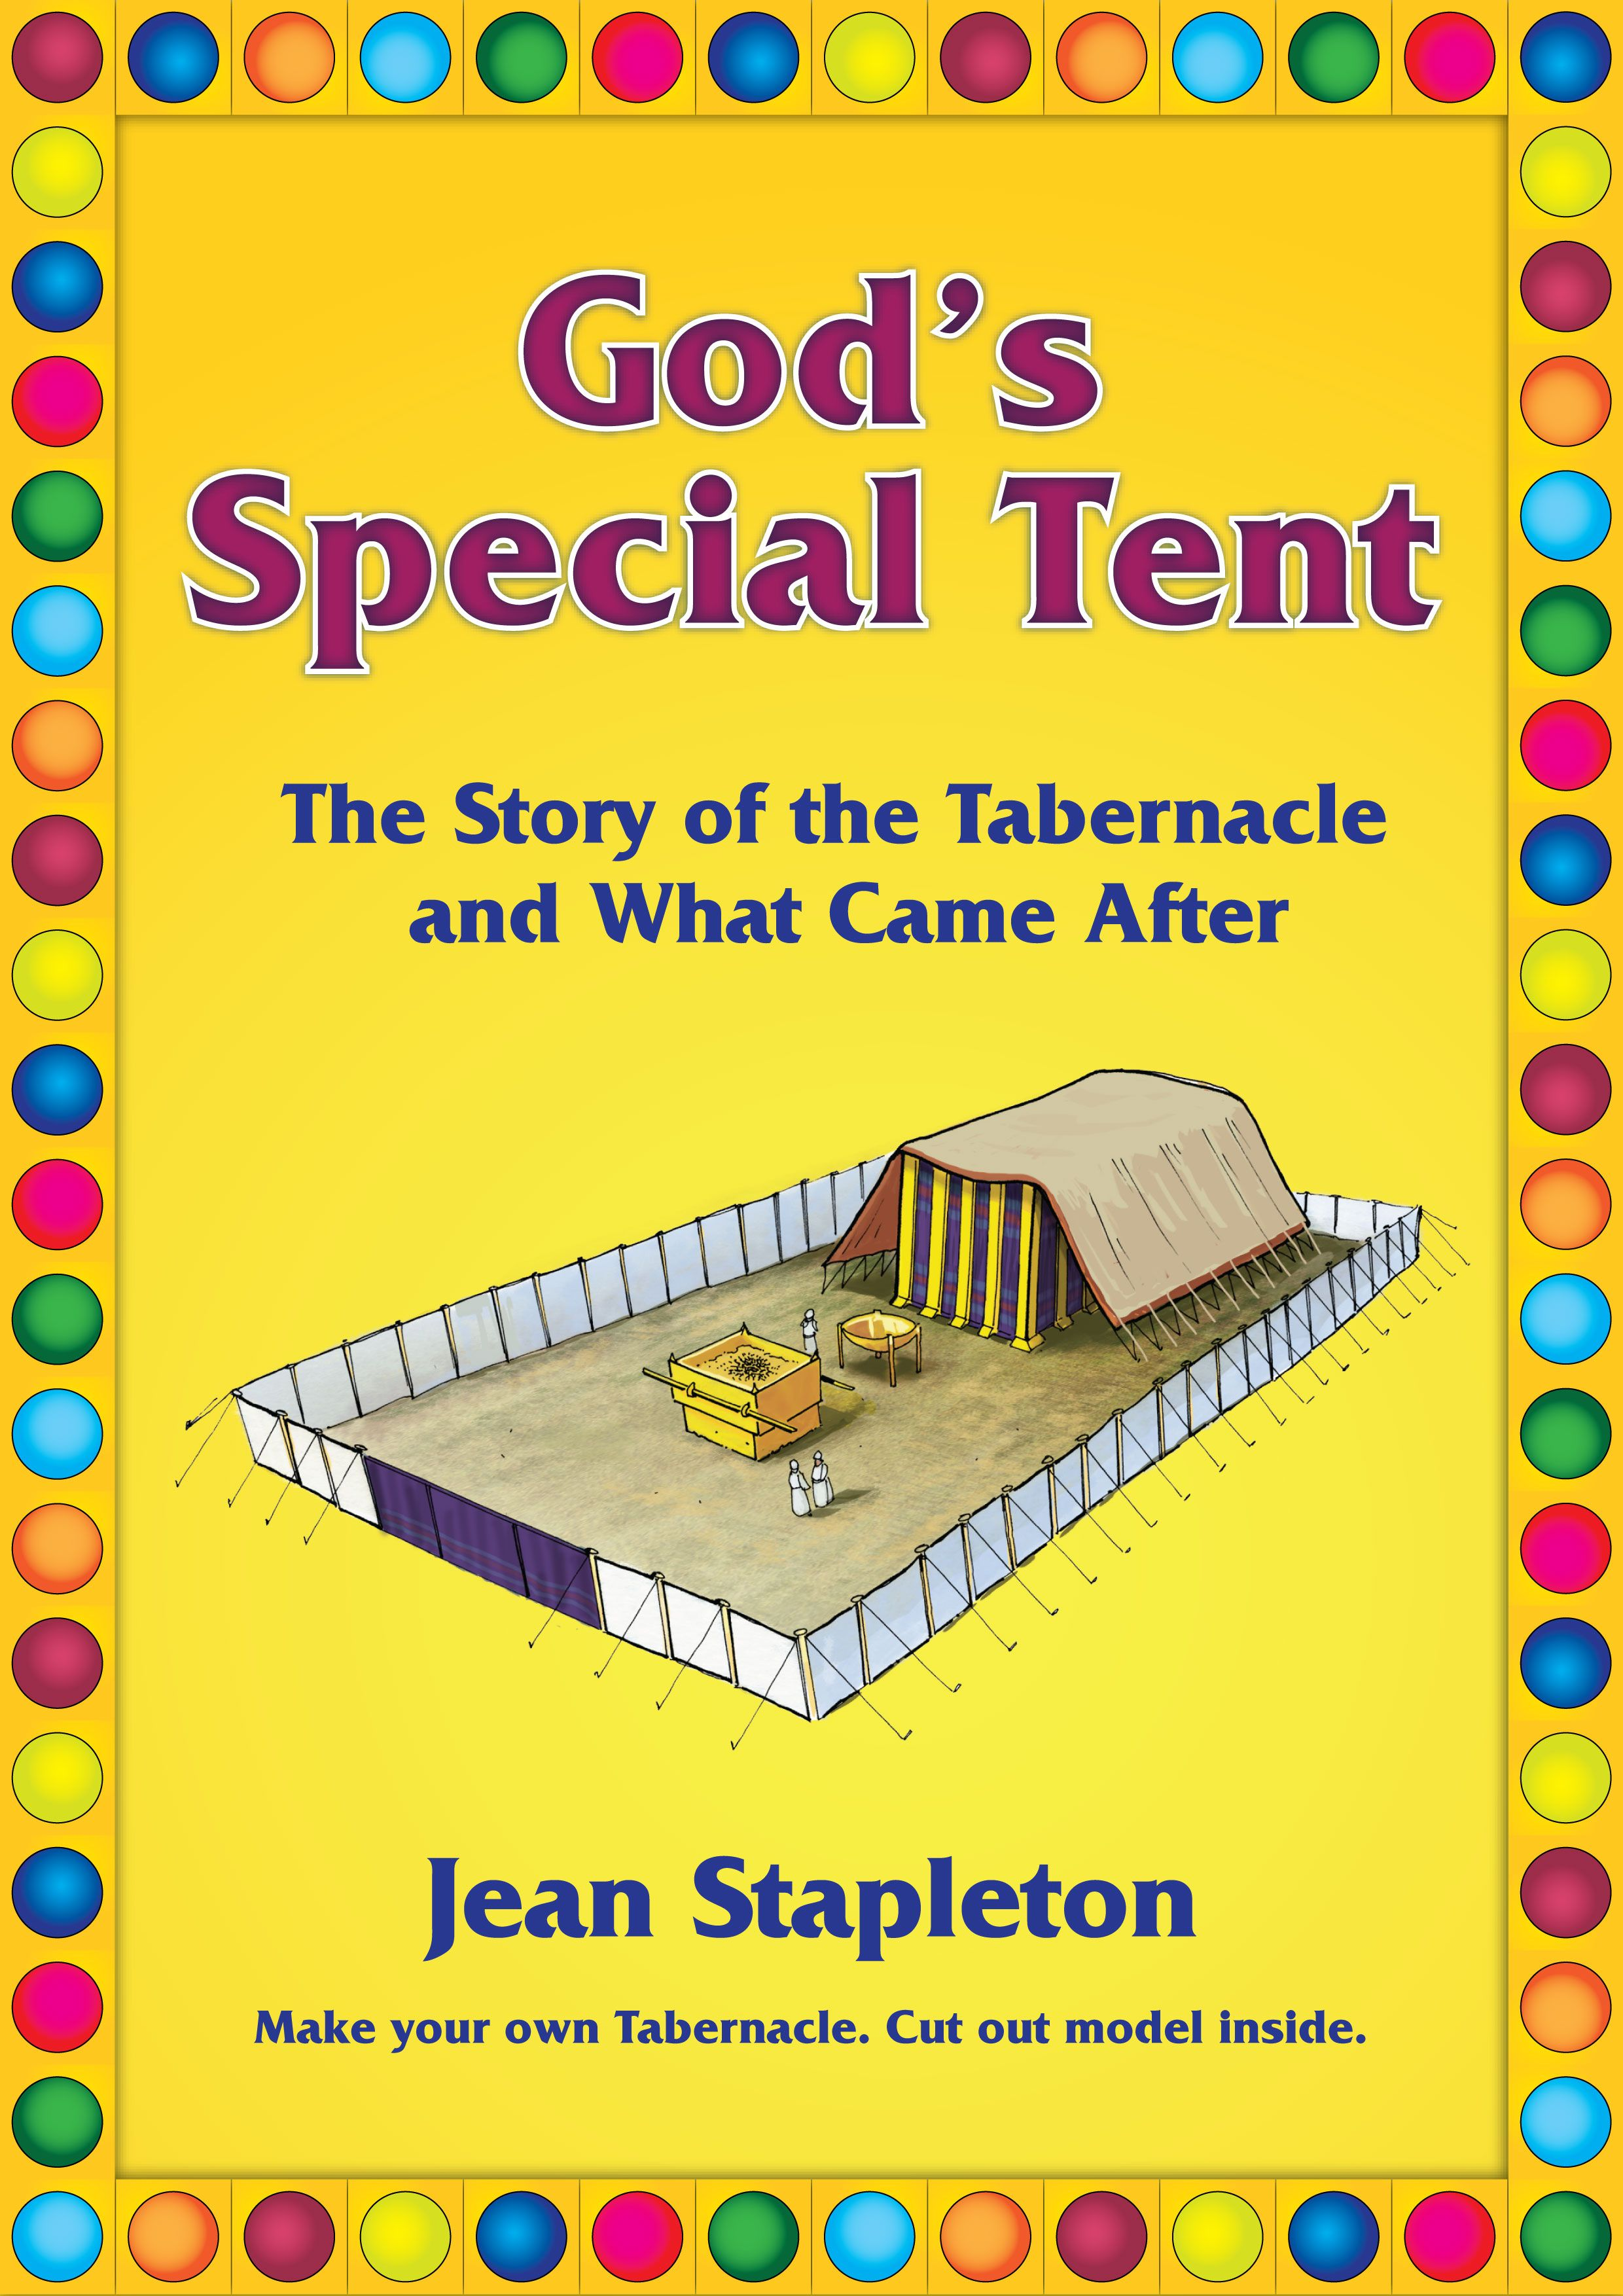 The Promise Of The Tabernacle Fulfilled Gods Special Tent By Jean